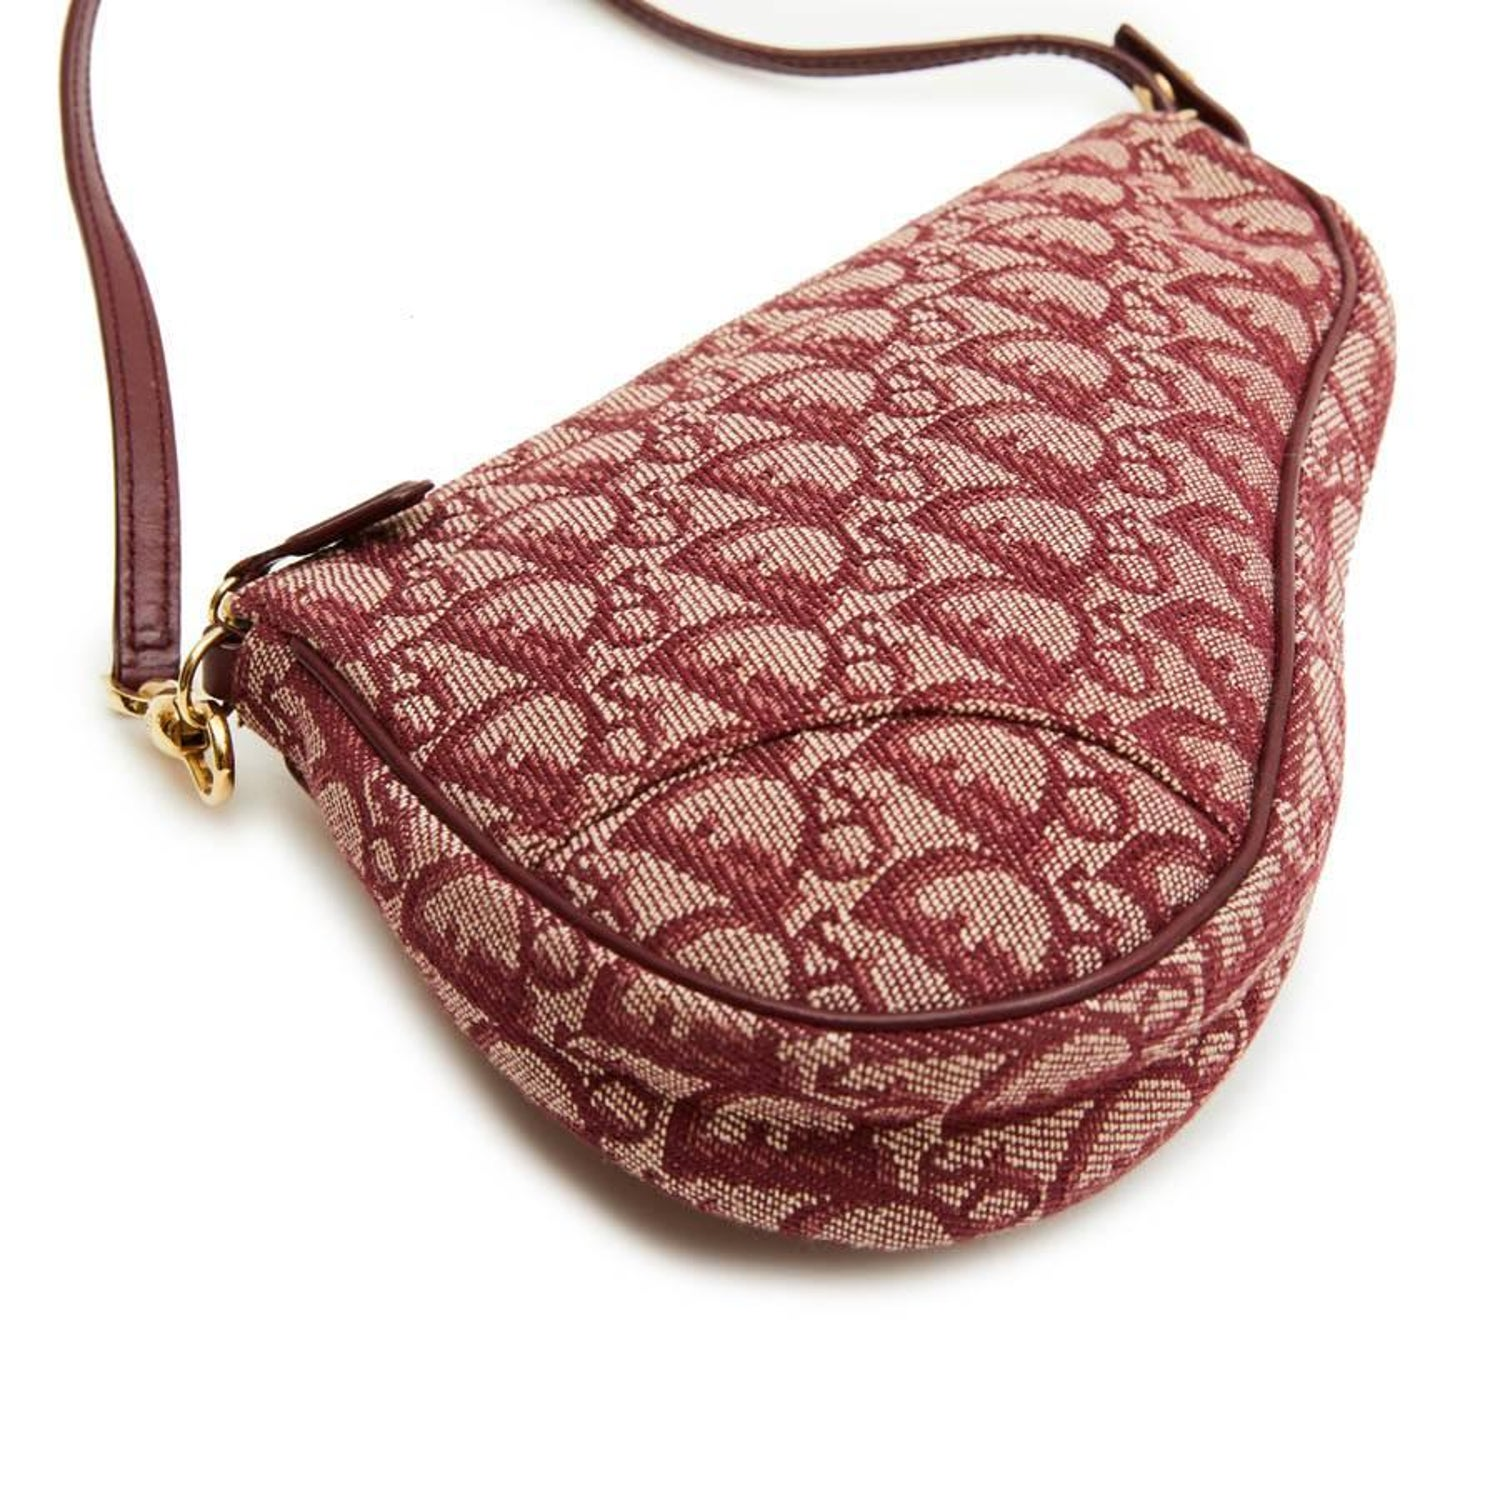 dcf8f06ac8dd CHRISTIAN DIOR  Saddle  Bag in Bordeaux Monogram Canvas at 1stdibs